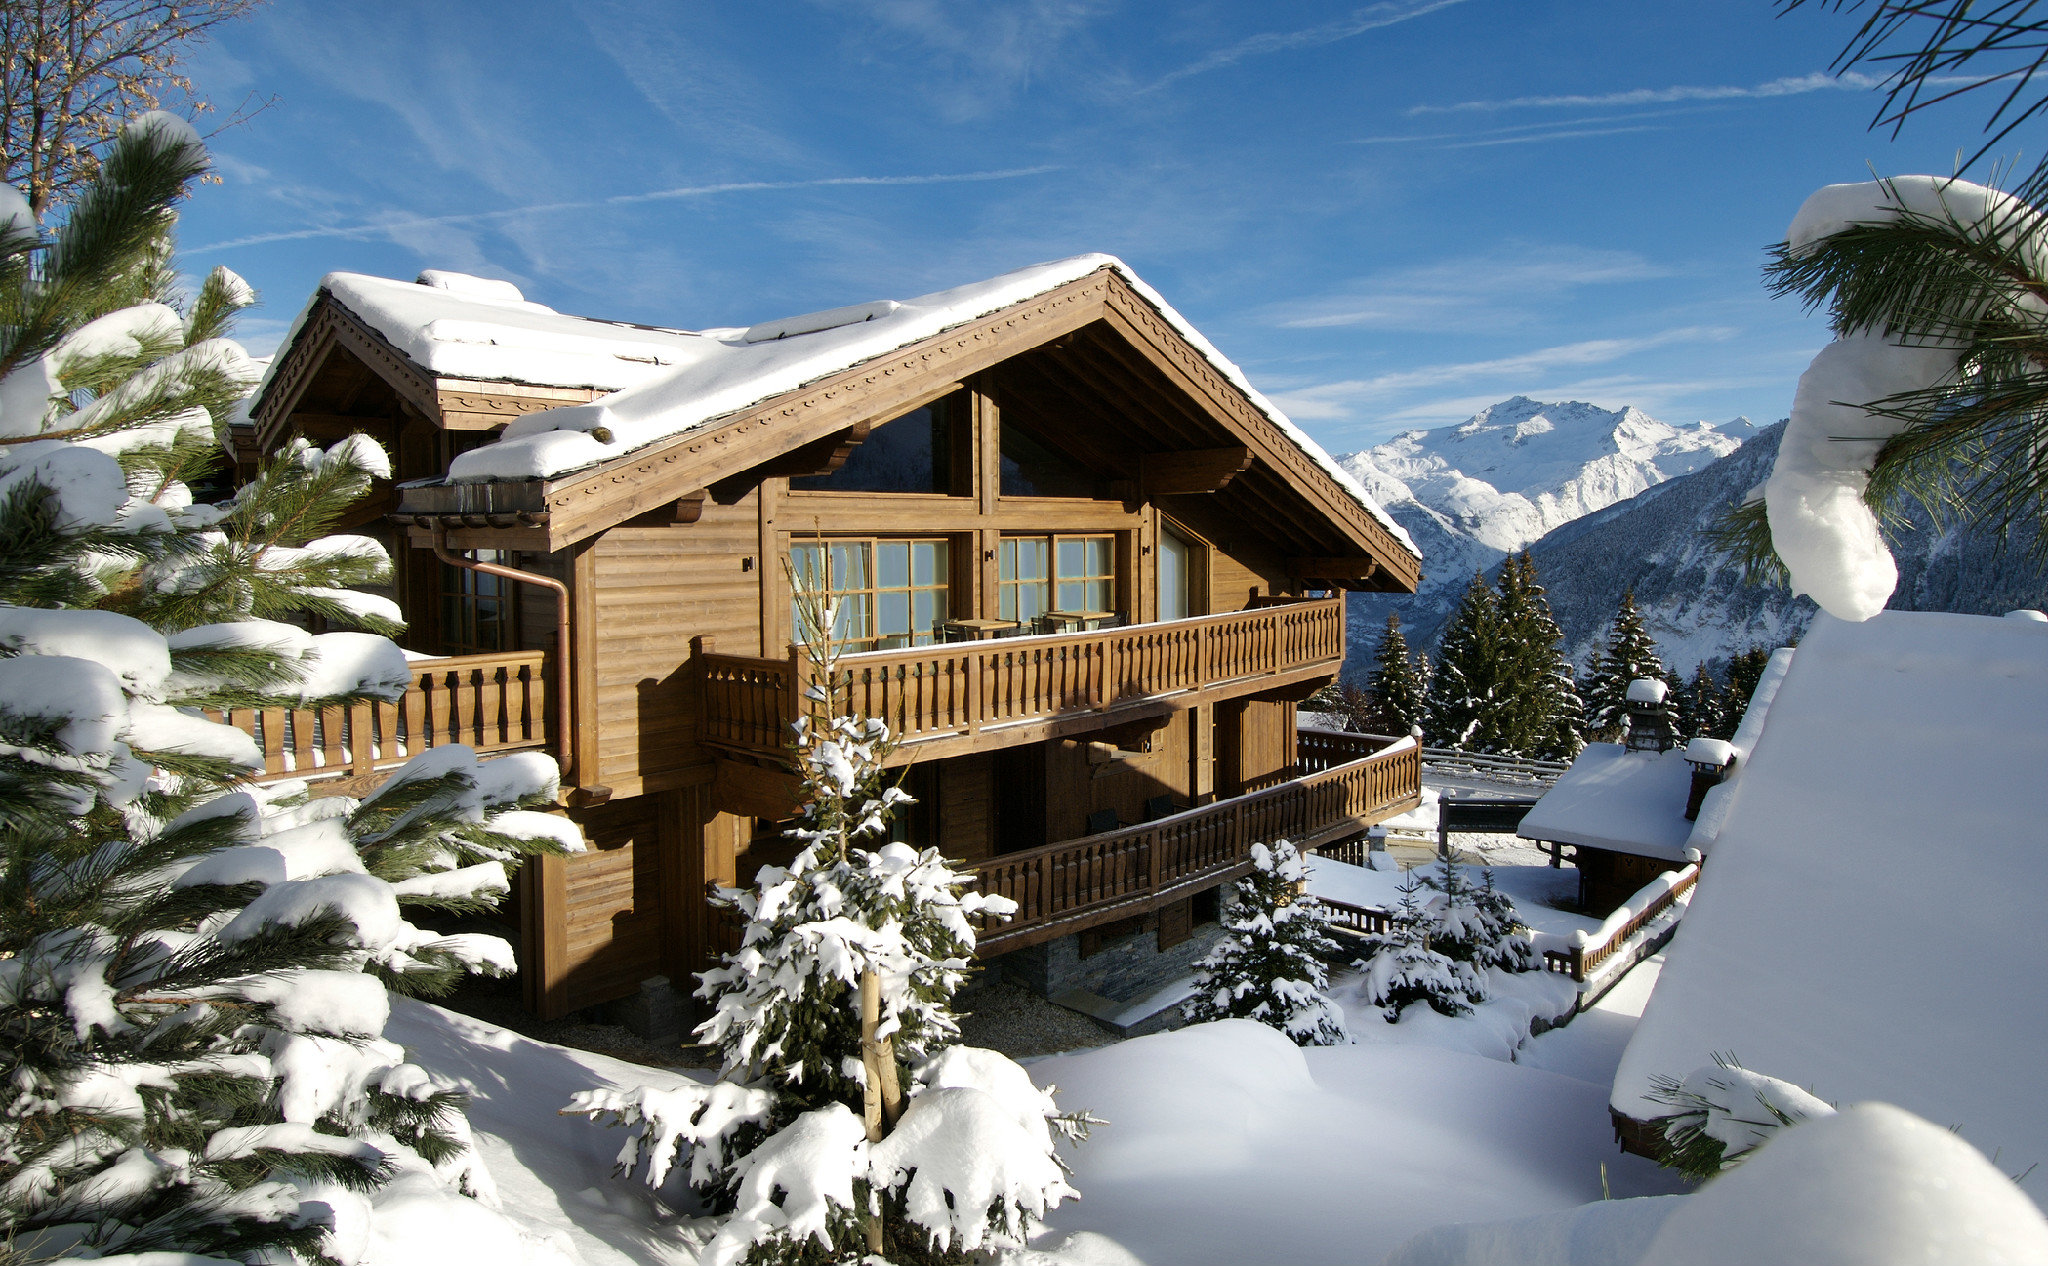 courchevel 1850 chalets